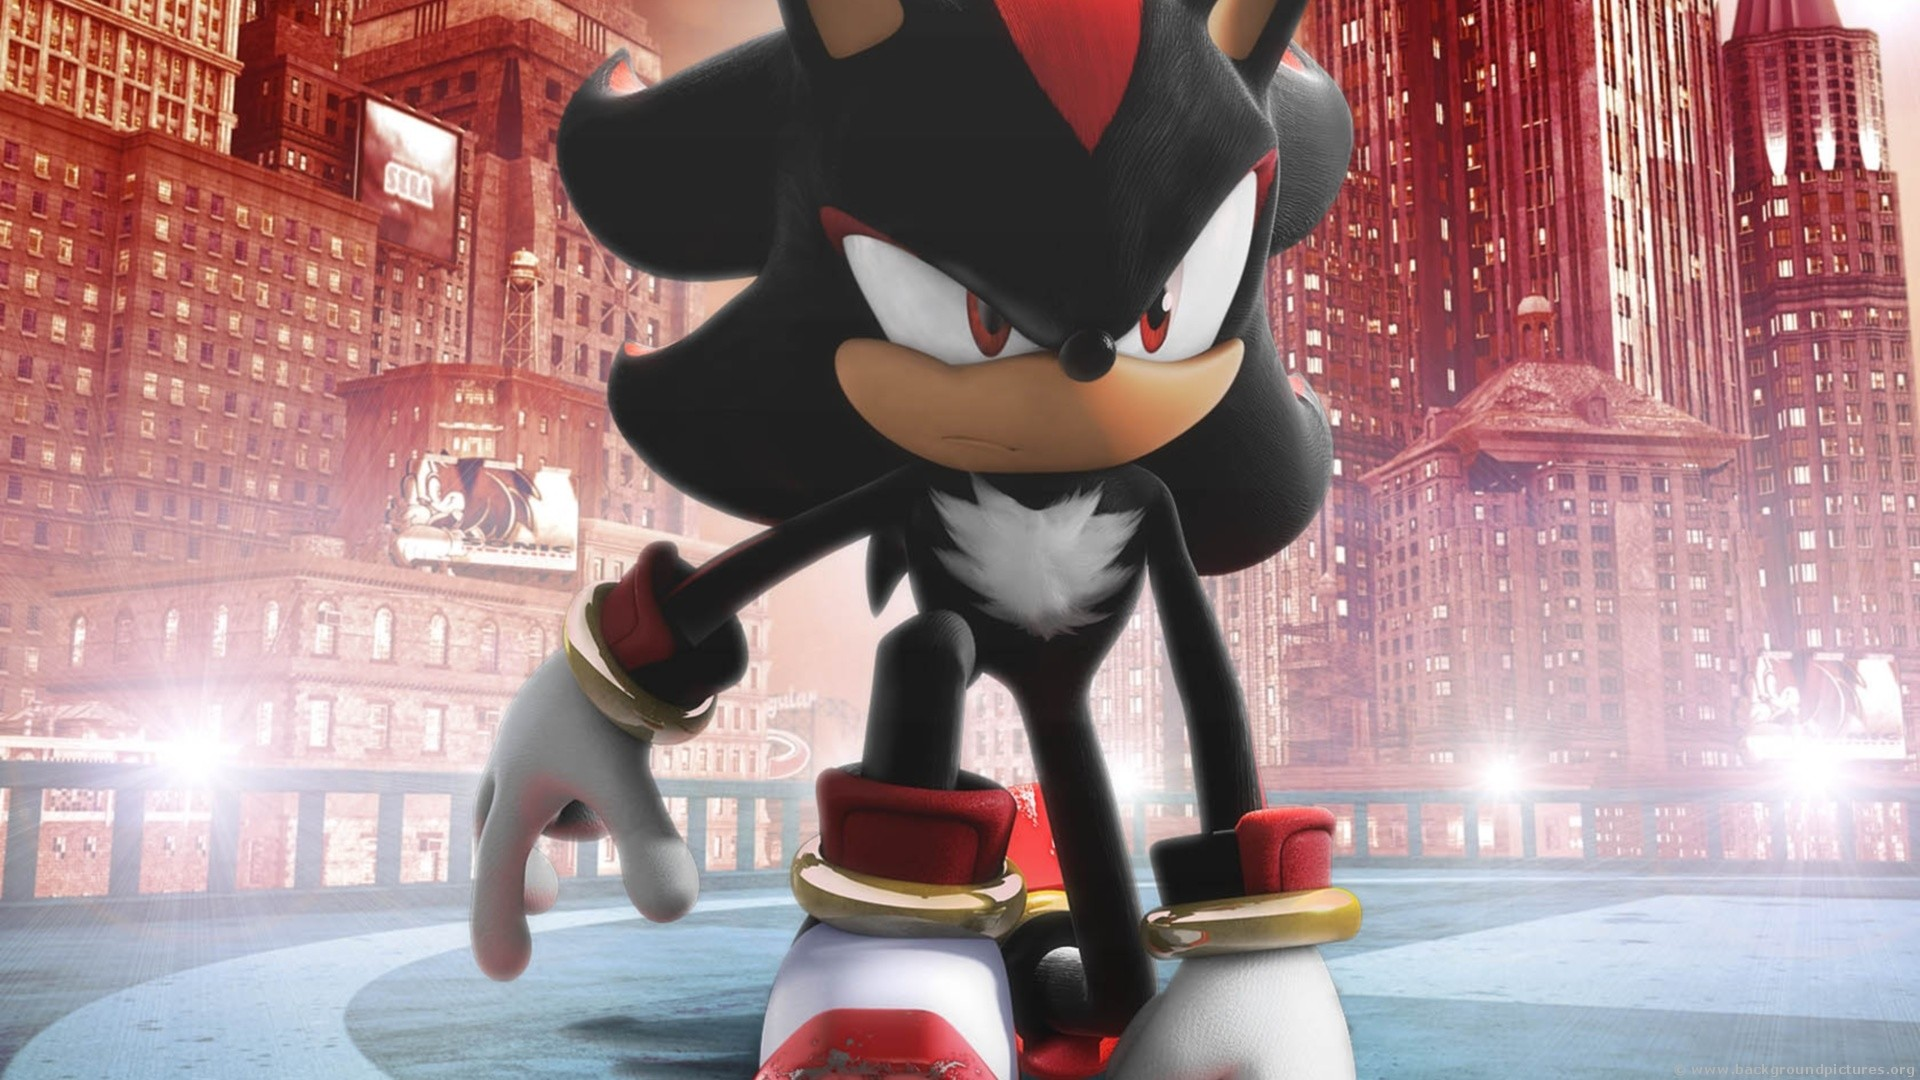 1920x1080 Shadow the Hedgehog · download Shadow the Hedgehog image